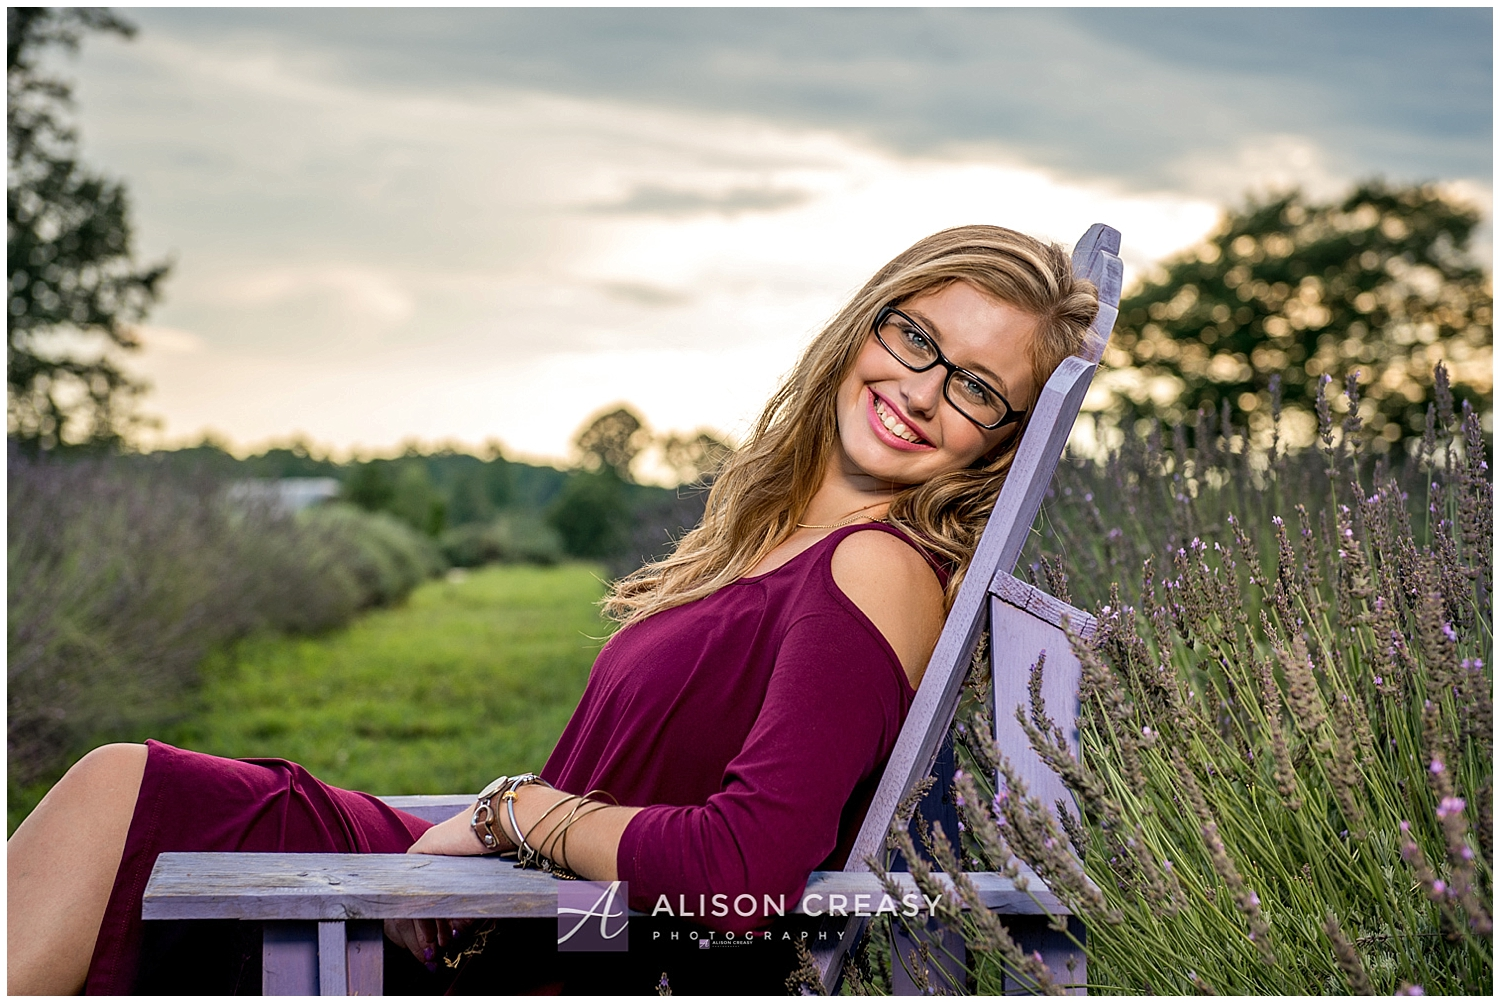 Alison-Creasy-Photography-Lynchburg-VA-Photographer_0717.jpg